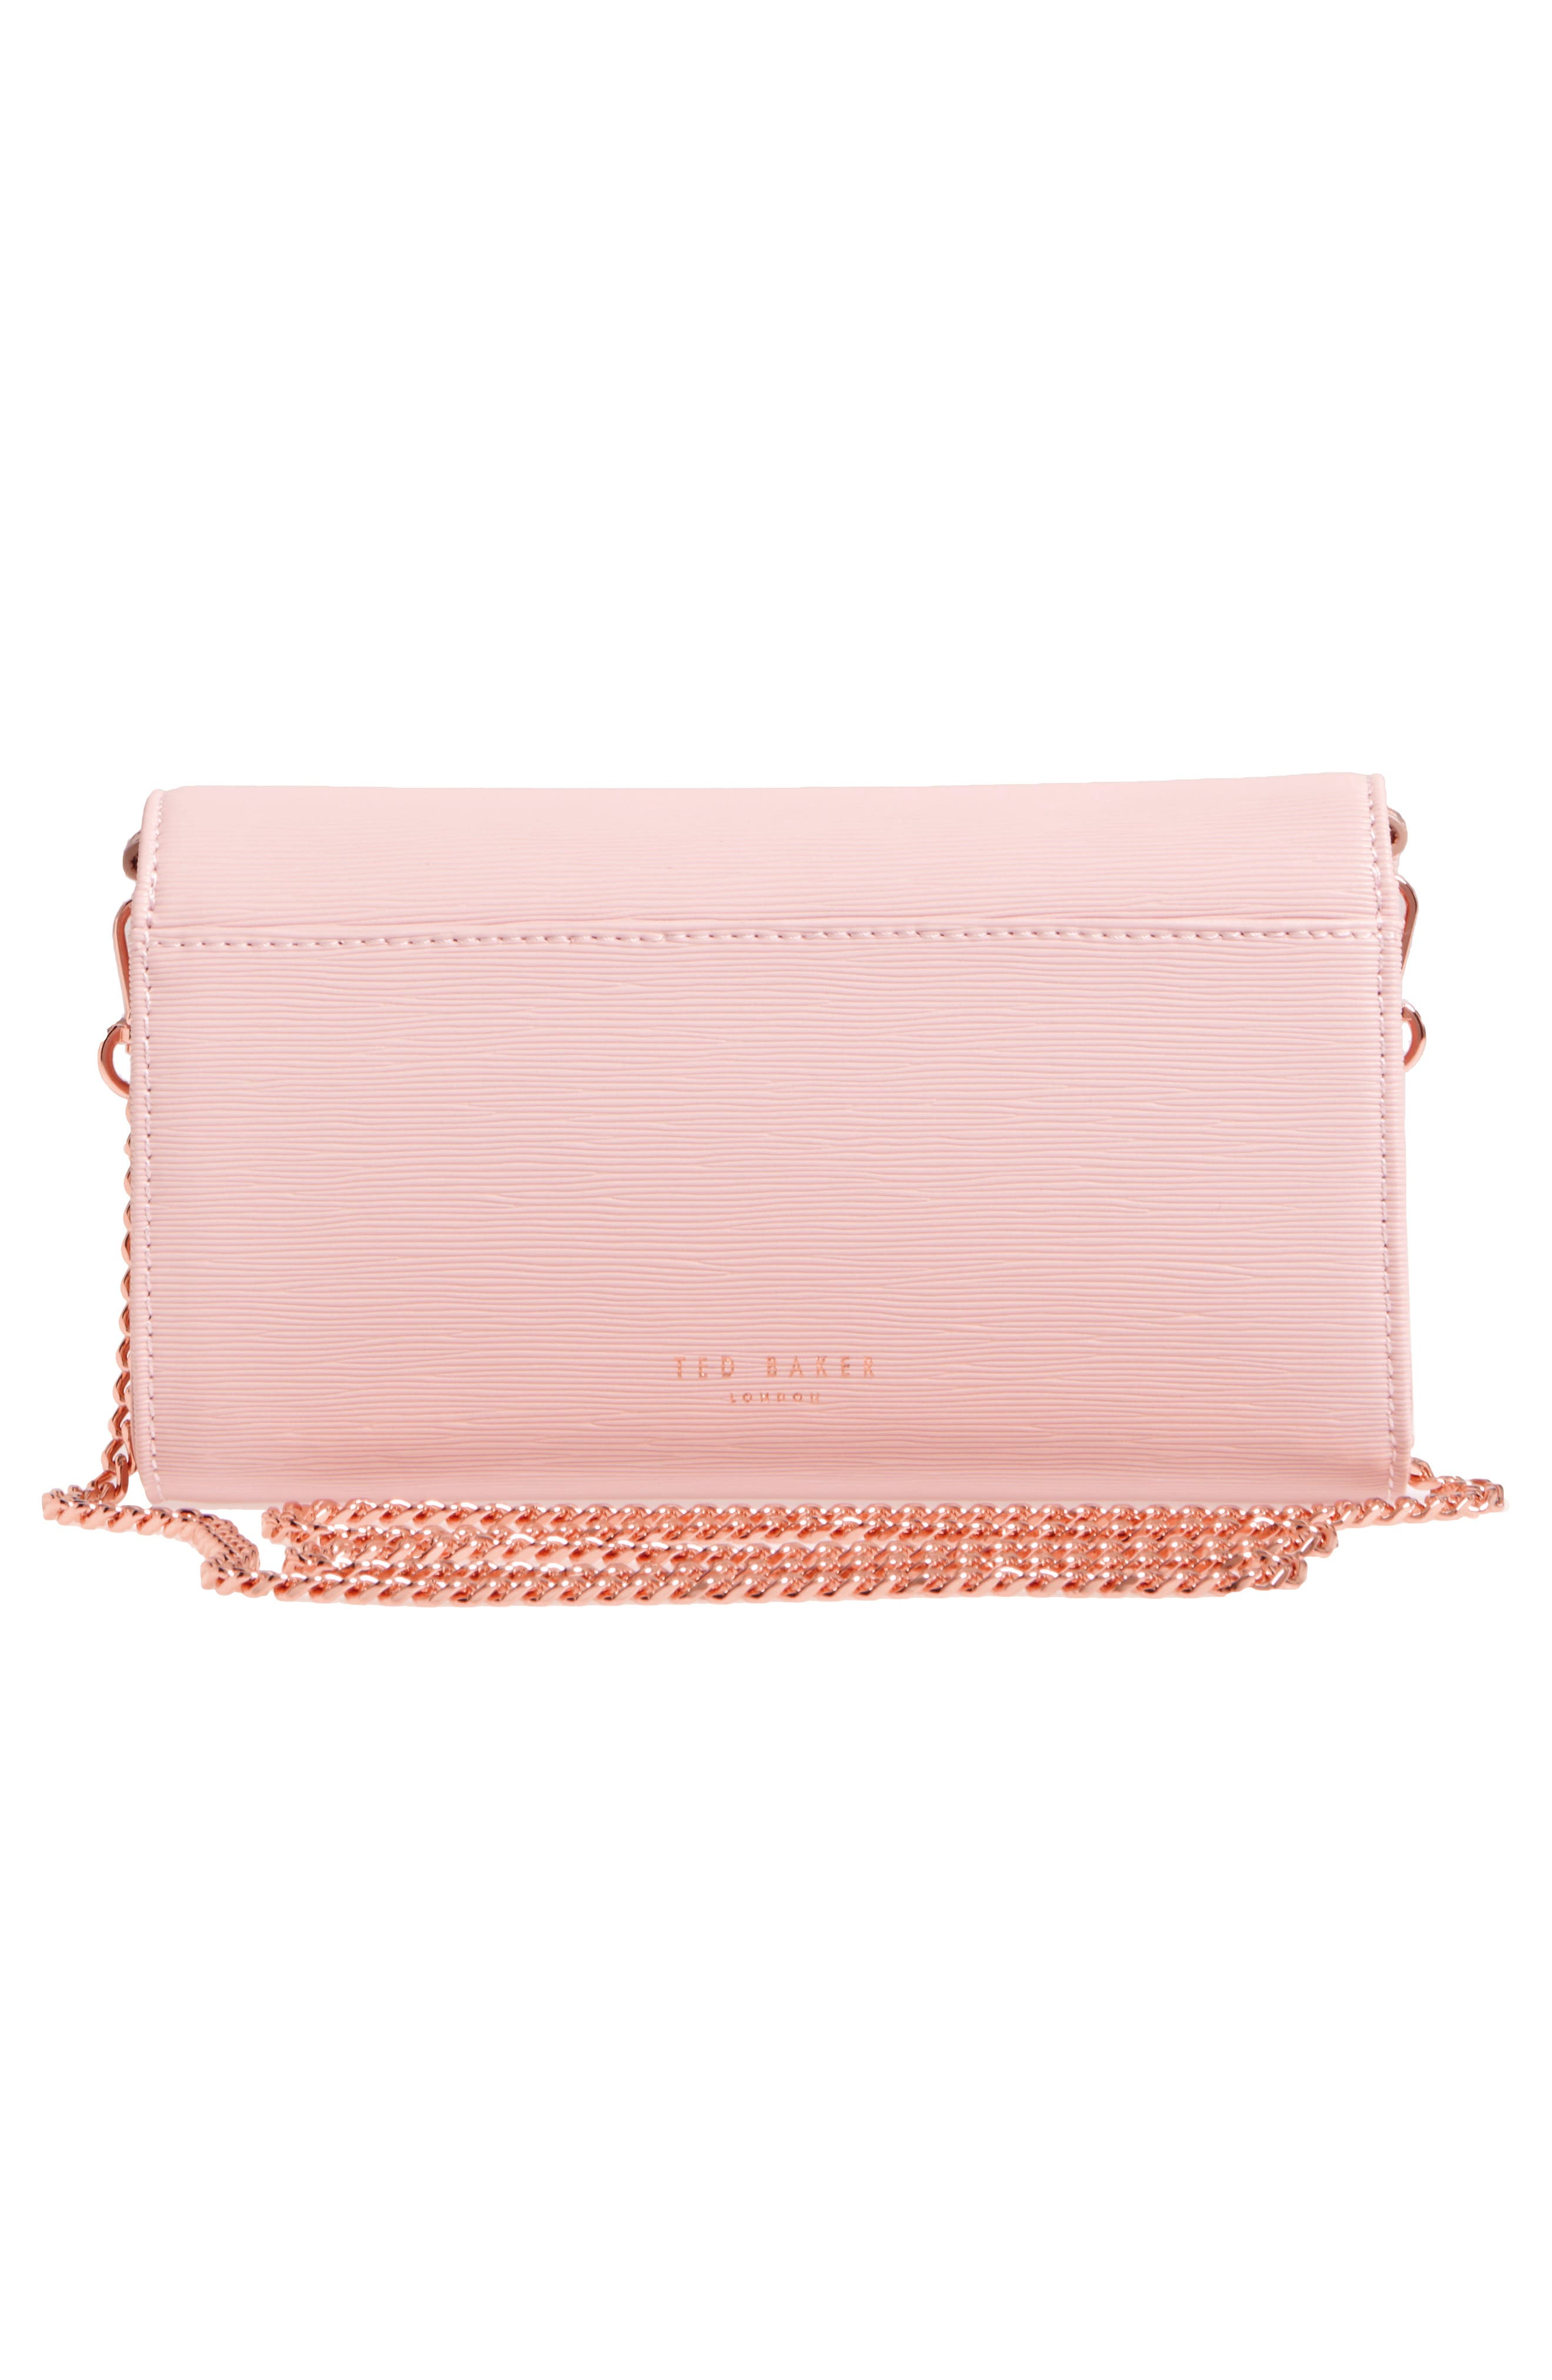 Melisia Bow Leather Mantinee Wallet on a Chain,                             Alternate thumbnail 3, color,                             Light Pink